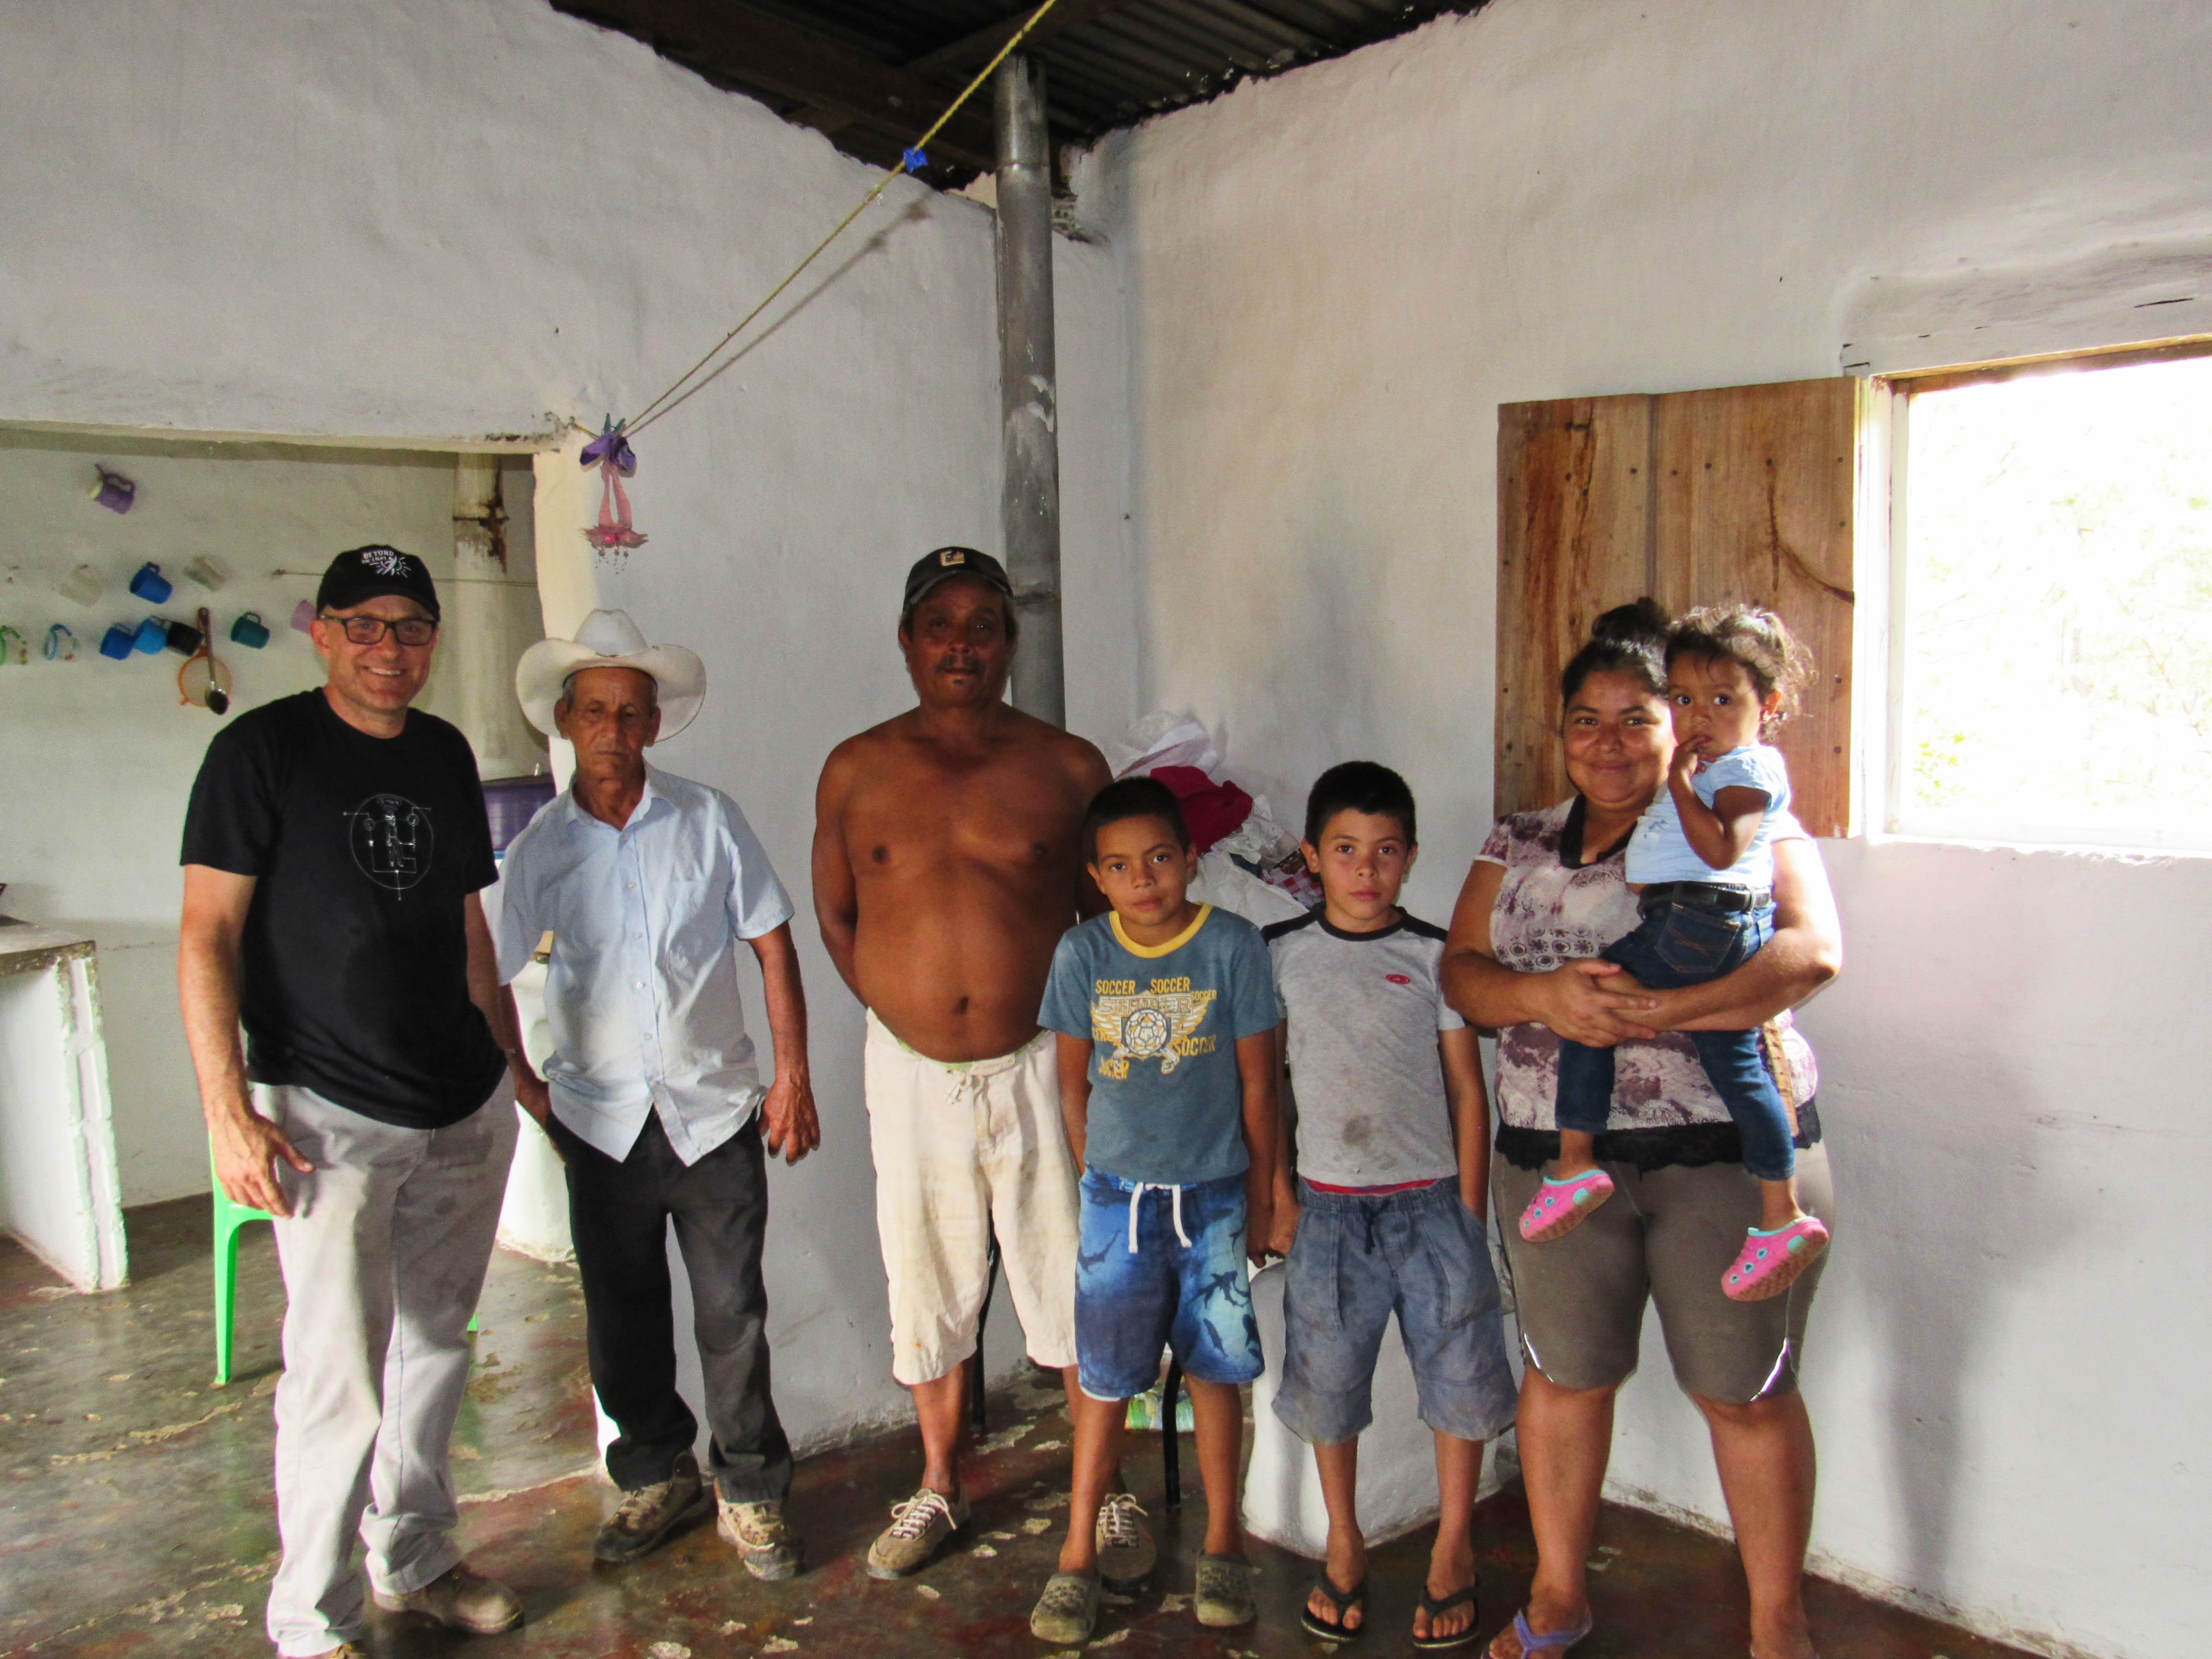 Jimmy with Family in Home